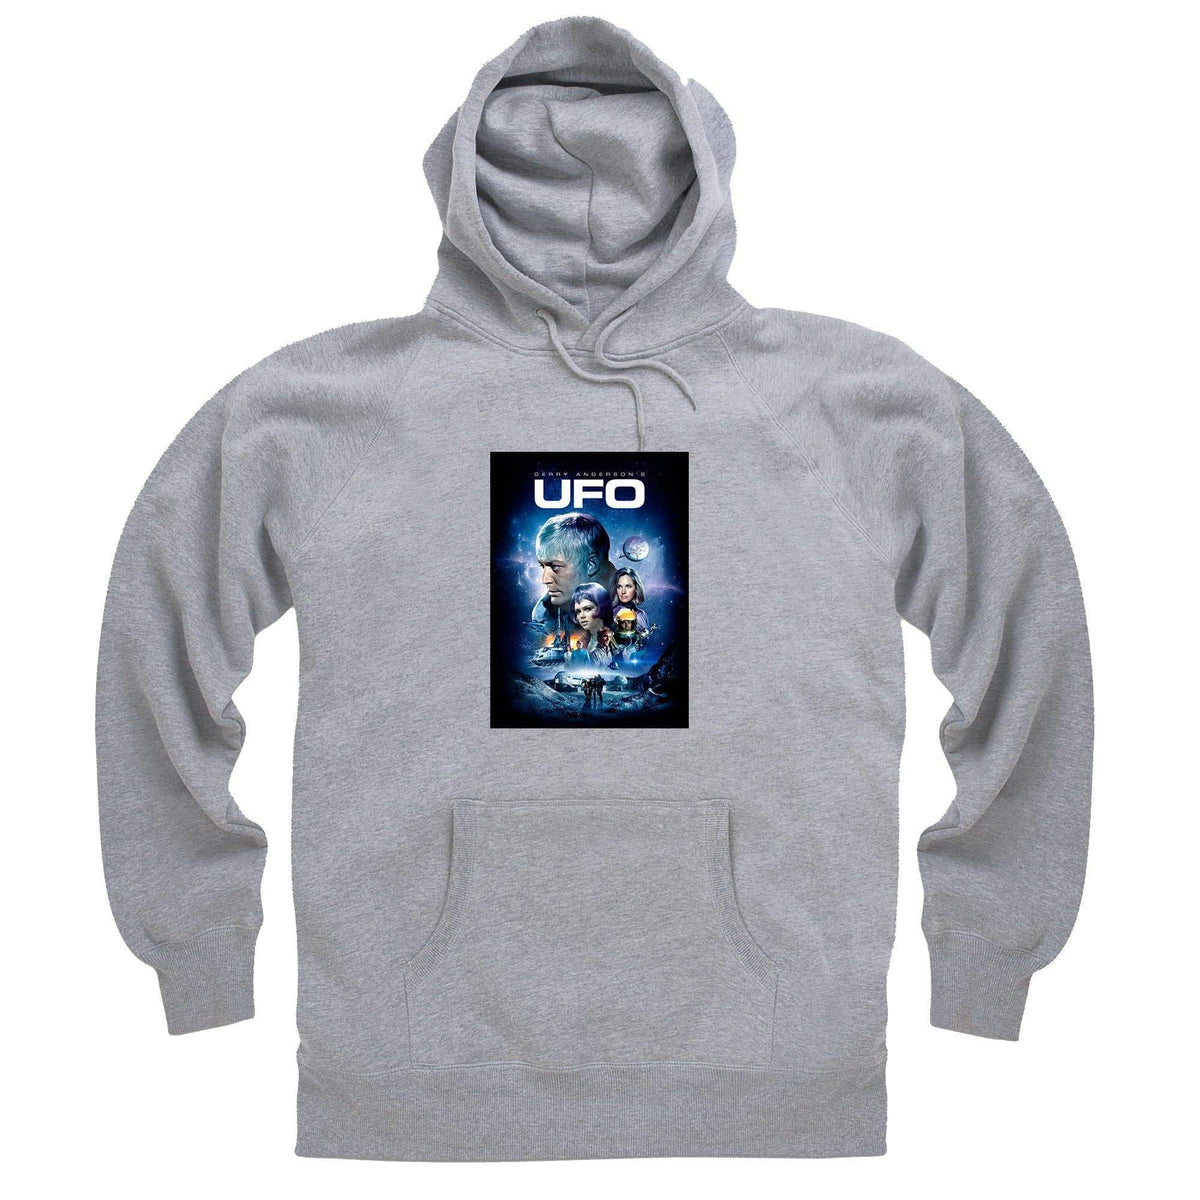 UFO Hoodie [Official & Exclusive] - The Gerry Anderson Store